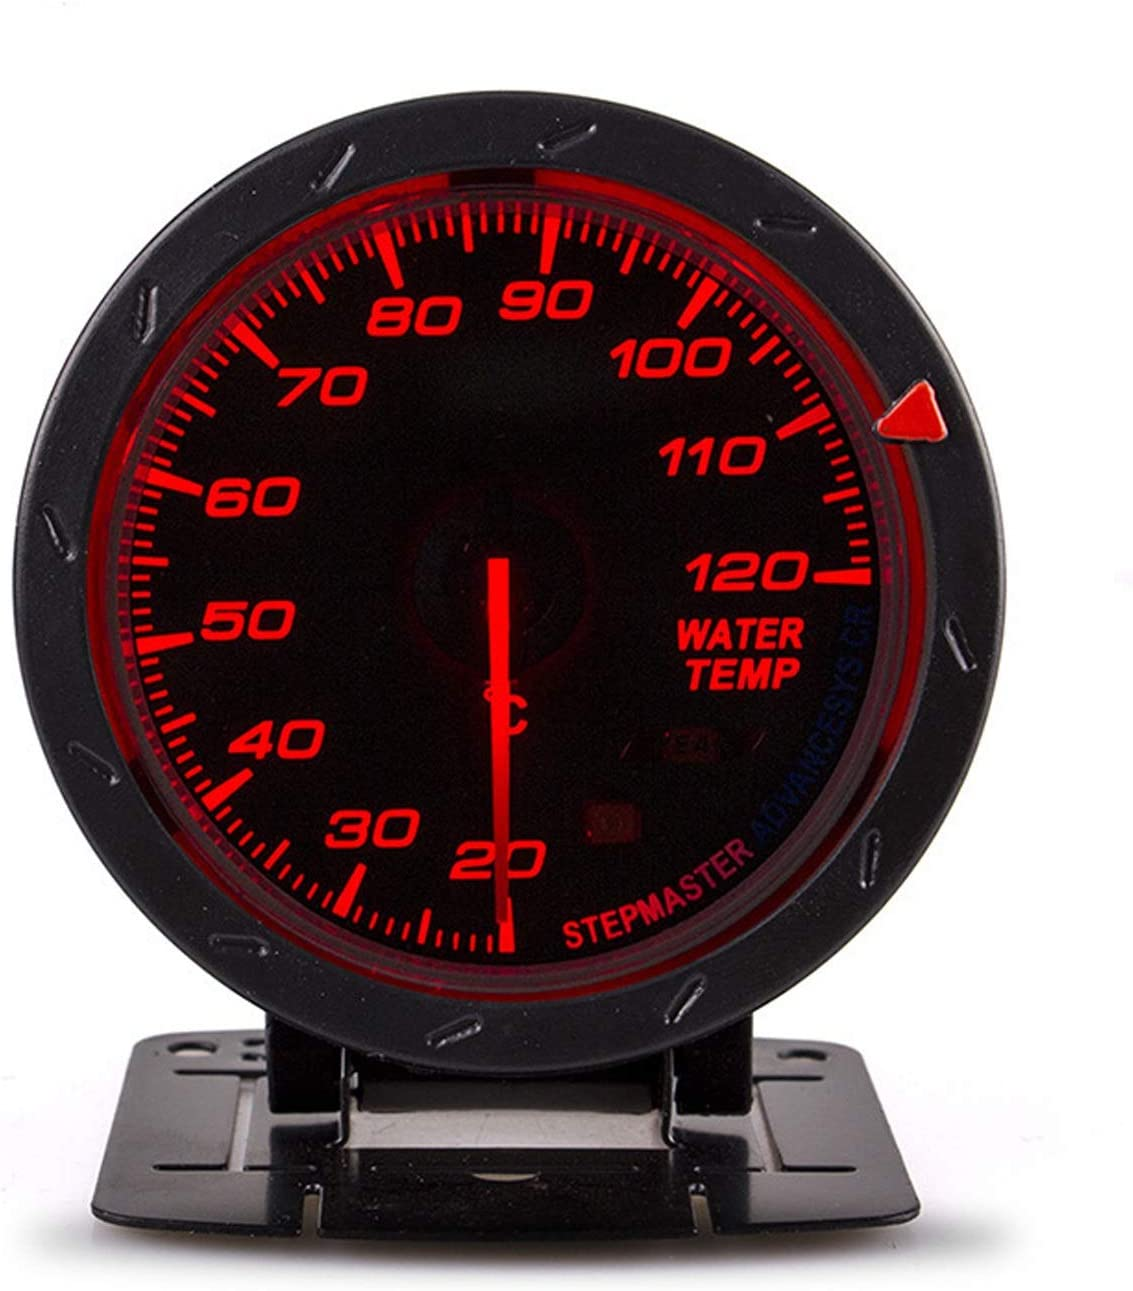 ZHU-CL Easy to Install Water Temp Celsius 60mm Poin 20-120 Wholesale Max 43% OFF Gauge